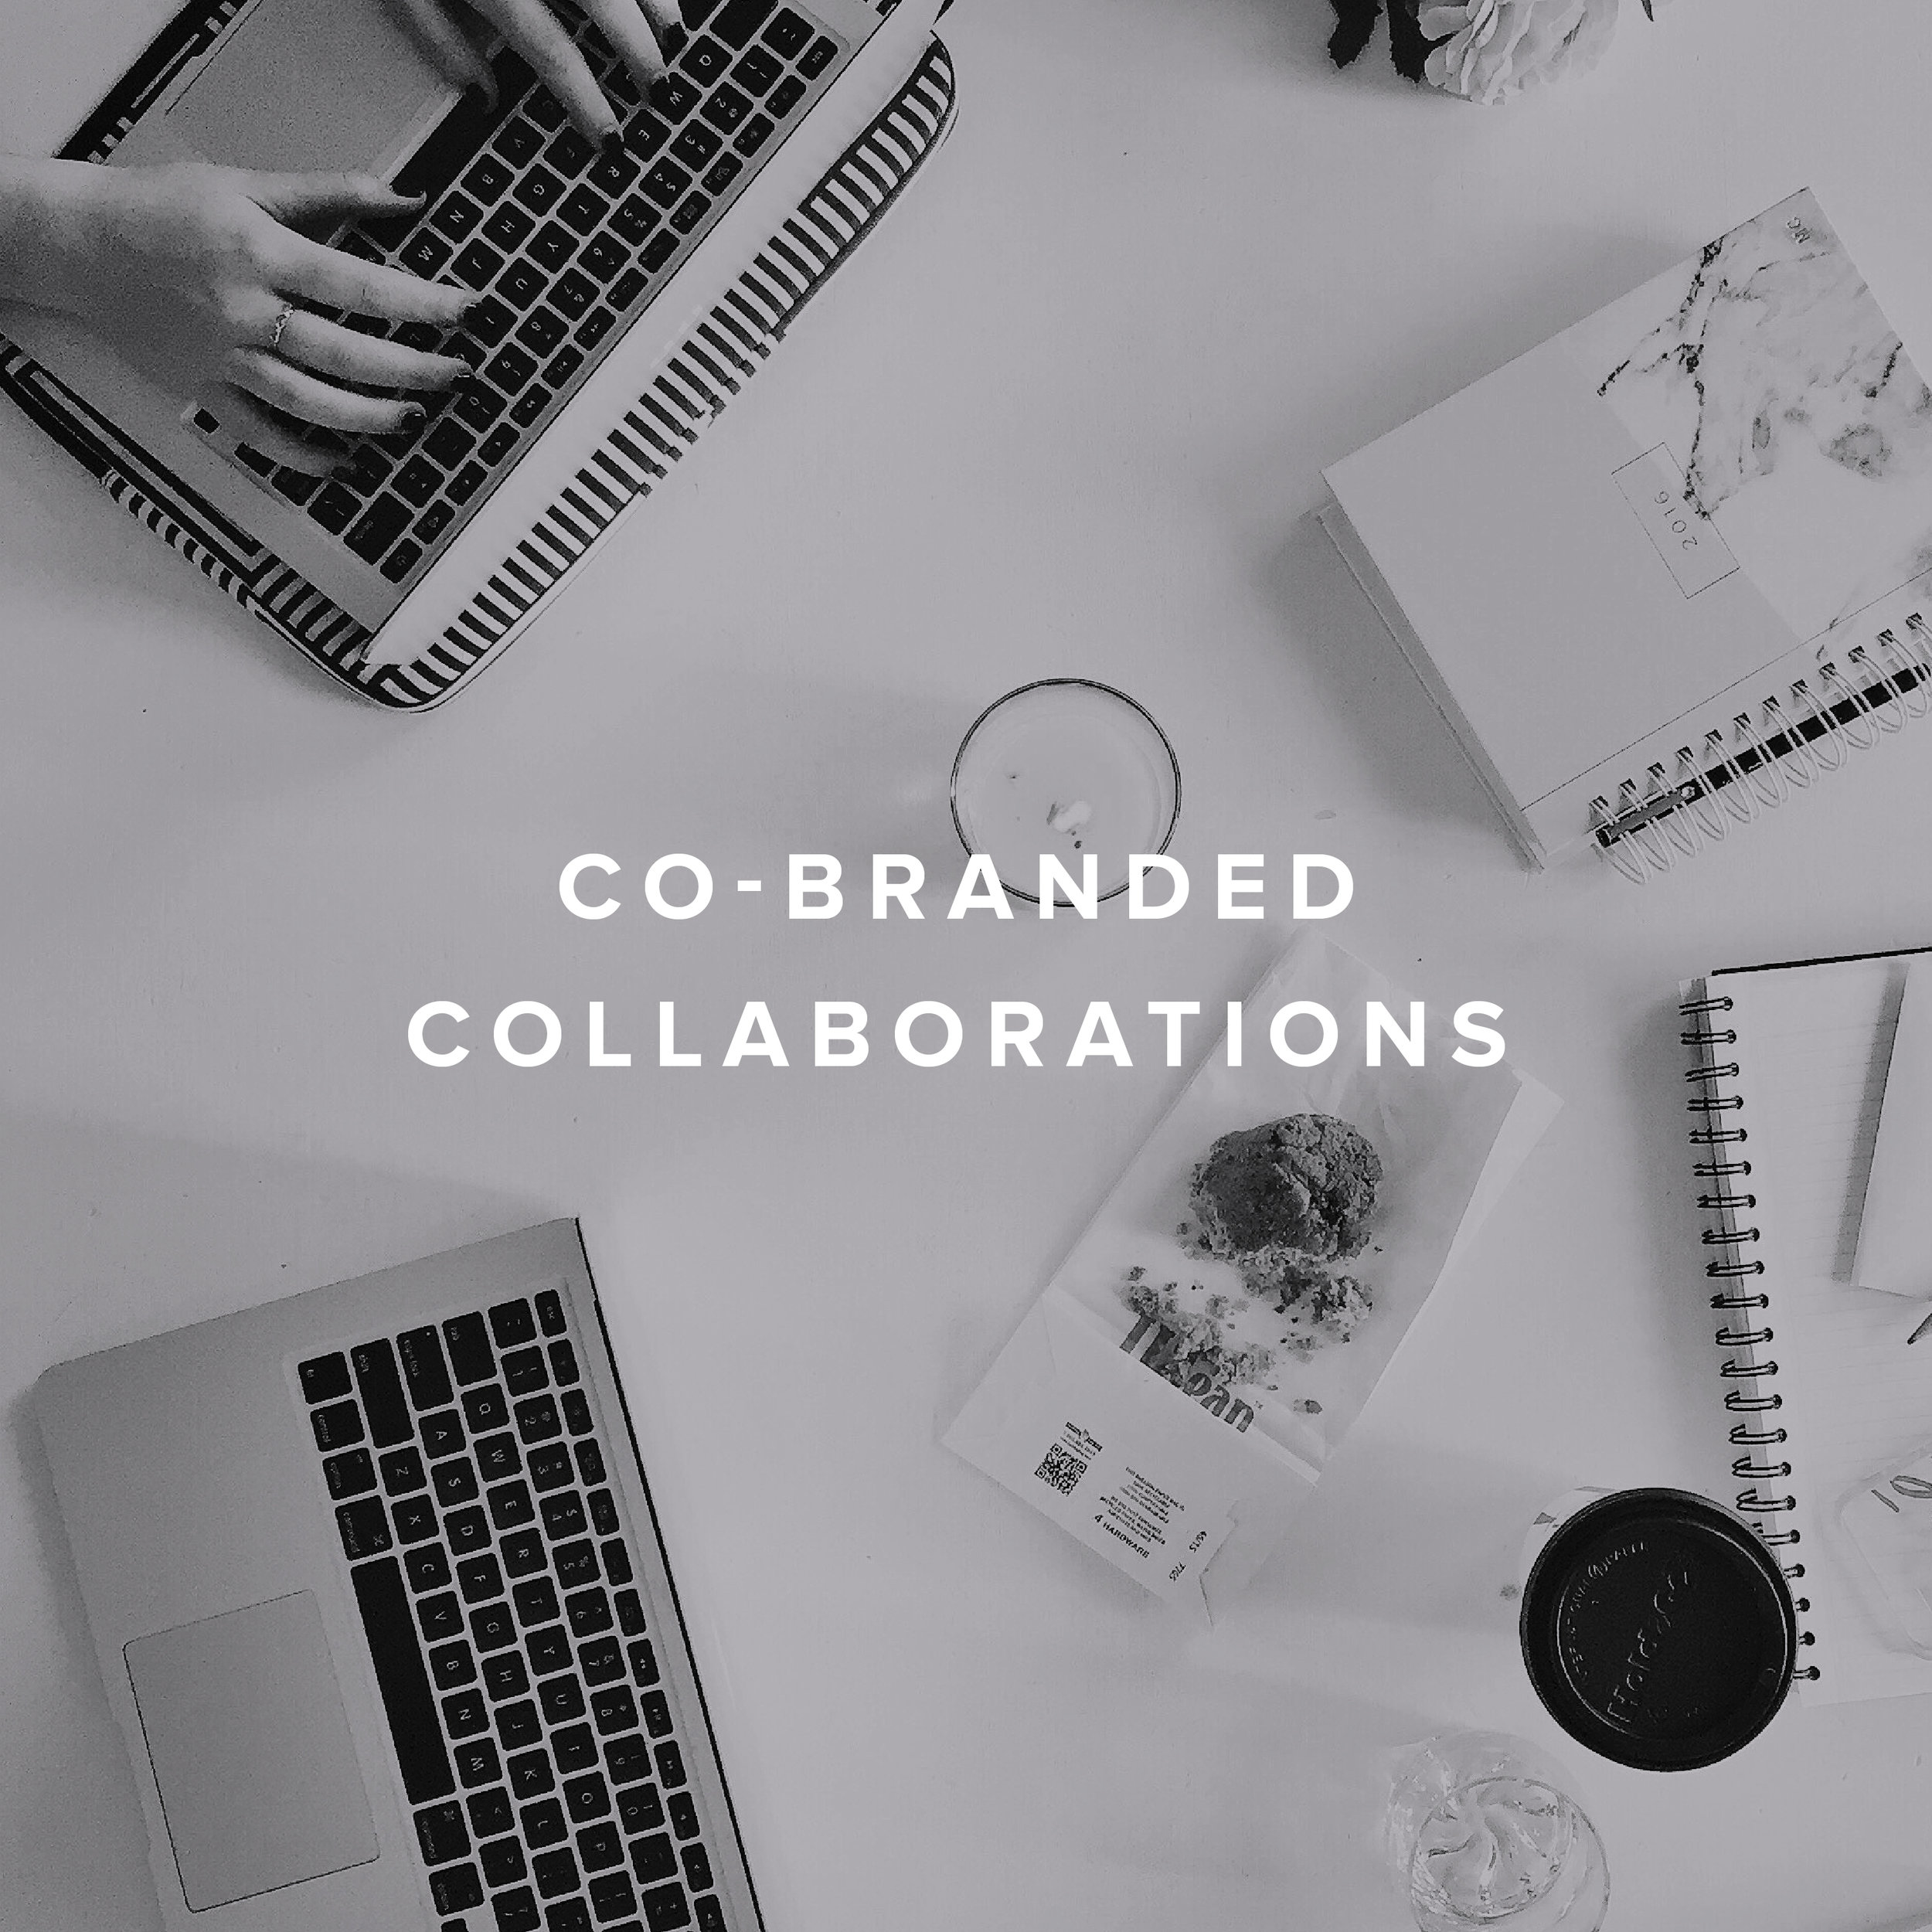 Whether it's saving costs or cross-pollinating audiences, we seek out the best collaborations possible.